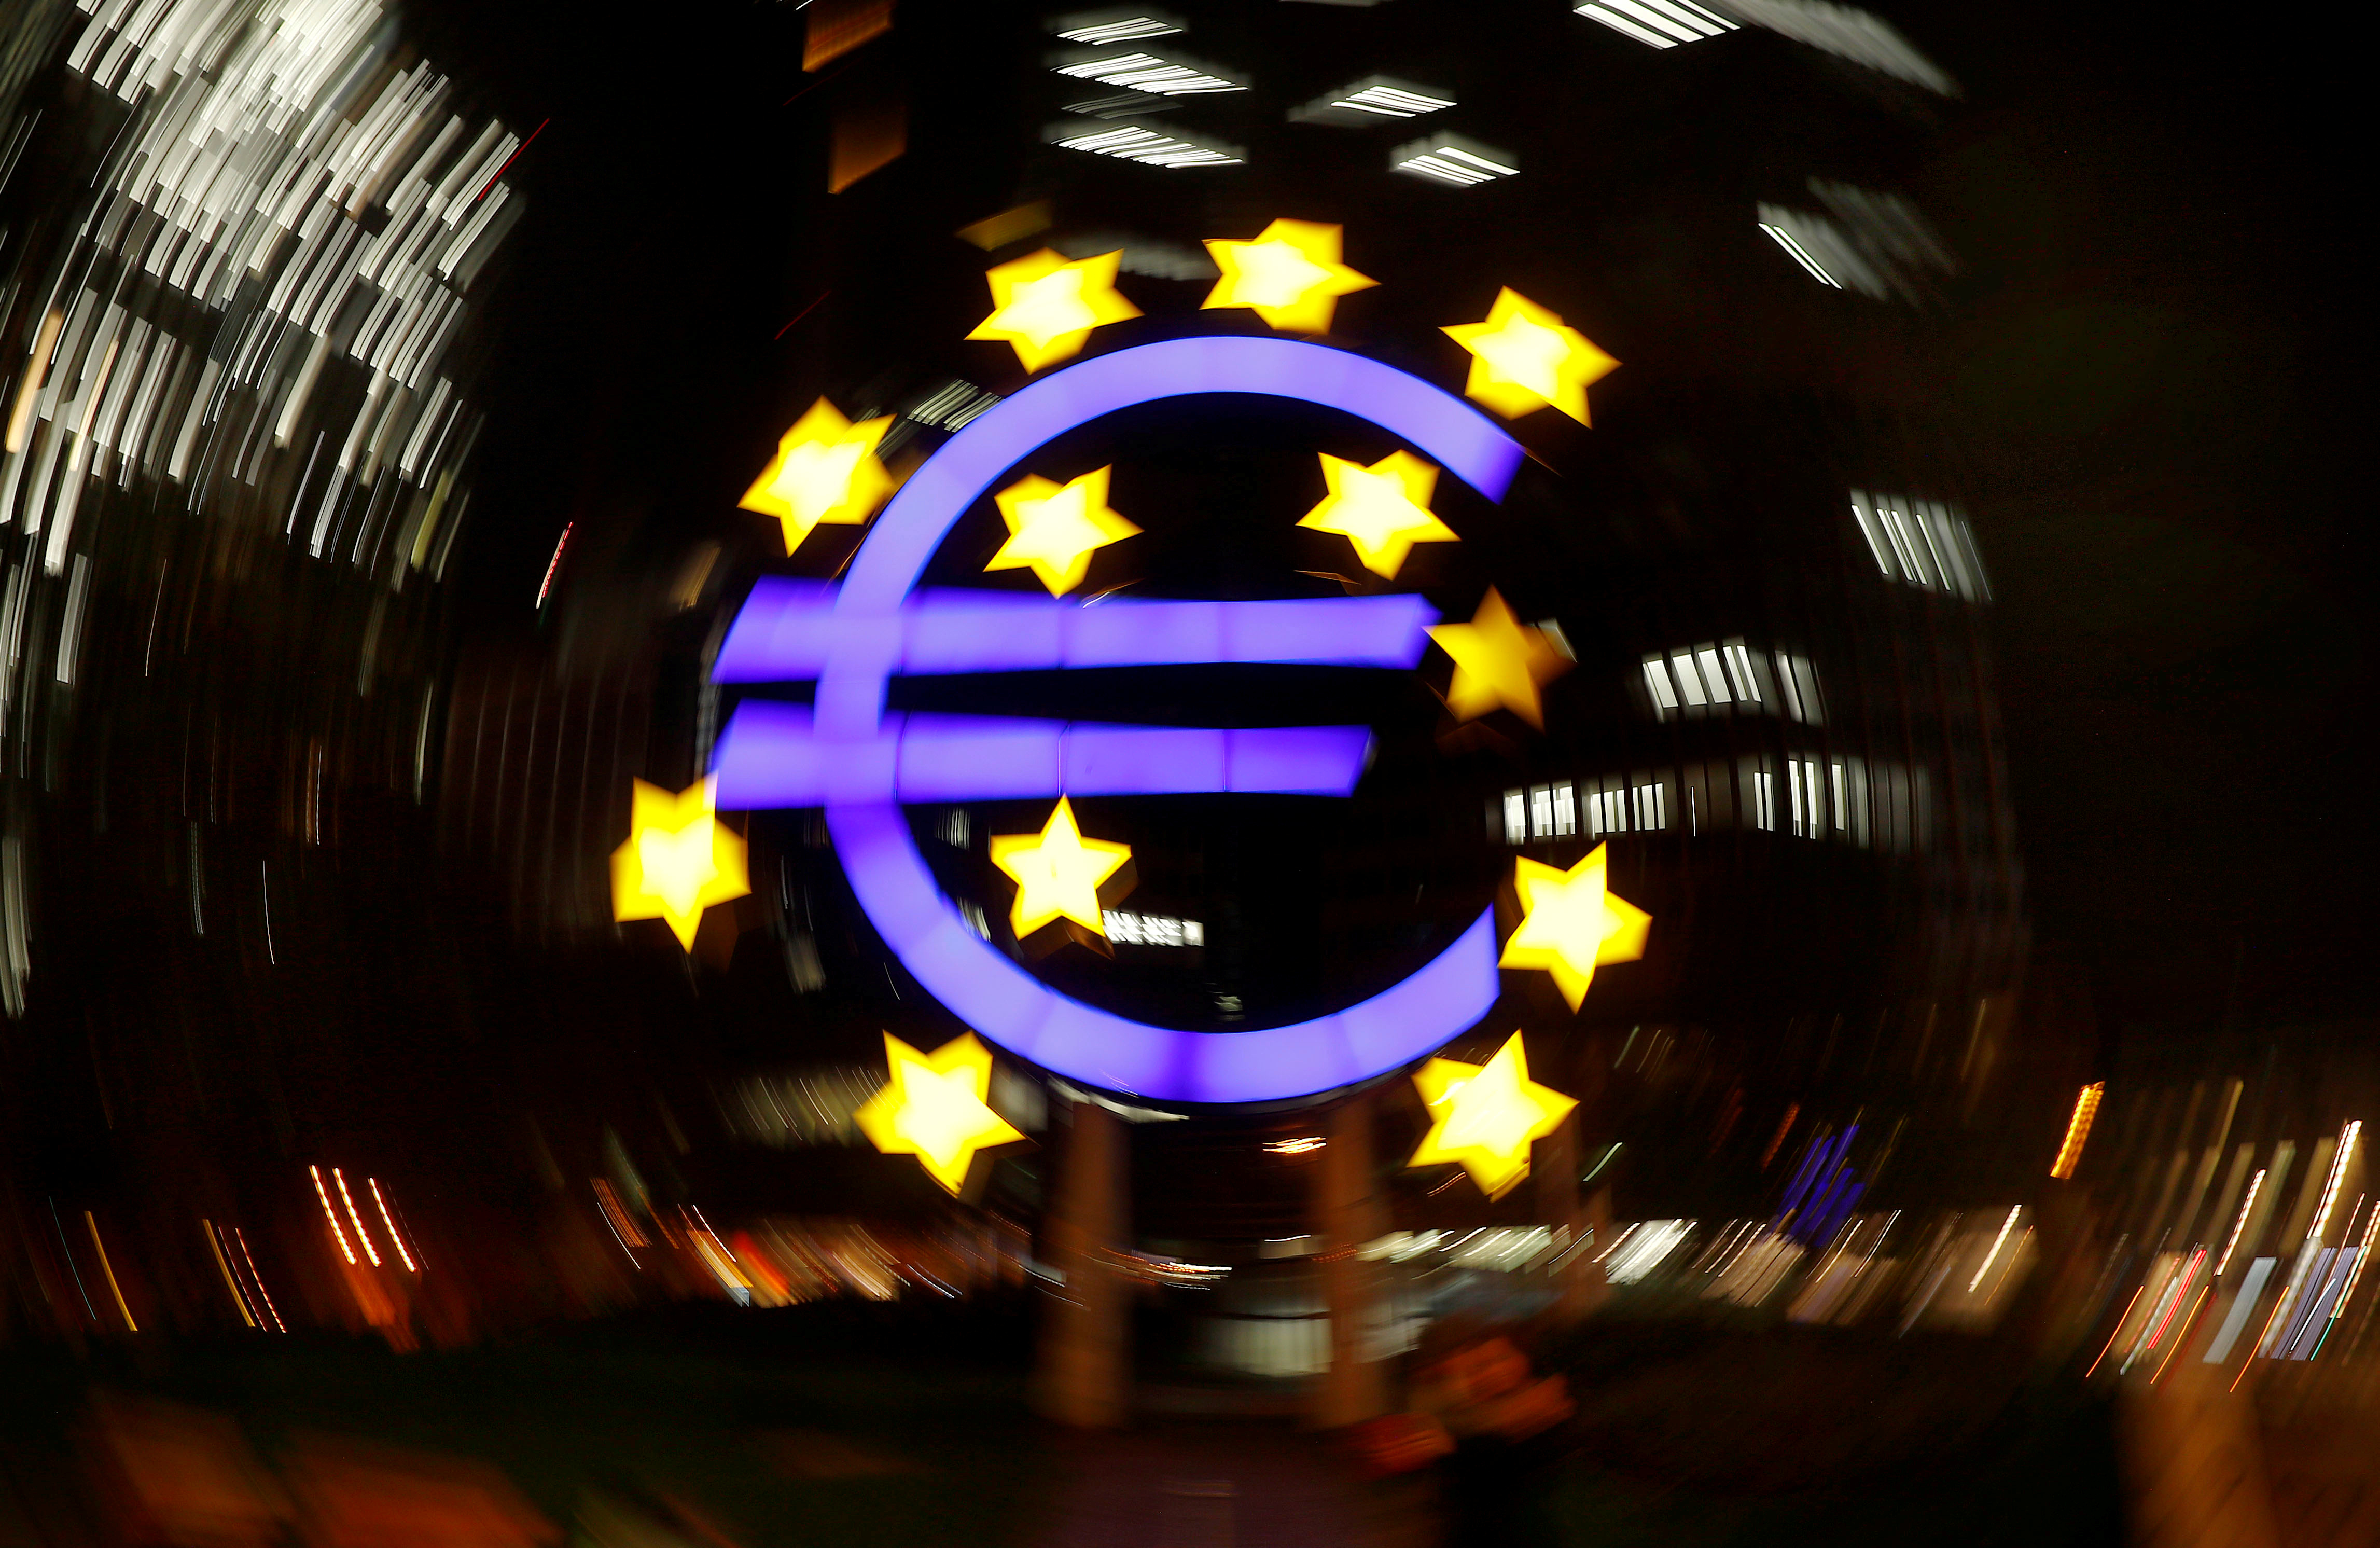 The euro sign is photographed in front of the former head quarter of the European Central Bank in Frankfurt, Germany, April 9, 2019. Picture is taken on slow shutter speed while the camera was moved.  REUTERS/Kai Pfaffenbach/File Photo